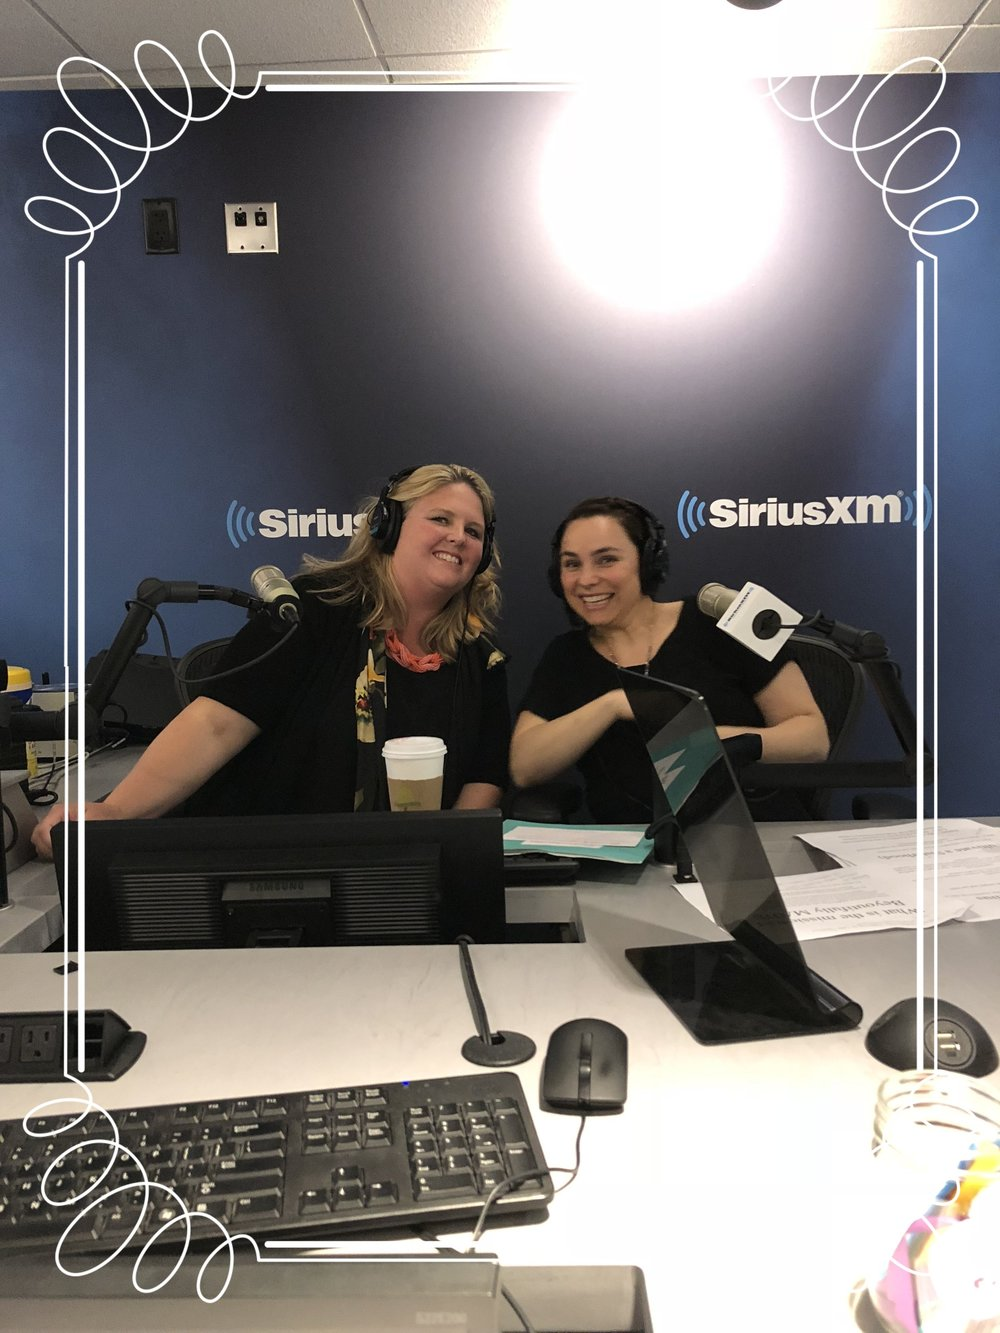 on the jennifer fulwiler show - at the SiriusXM studios in Manhattan